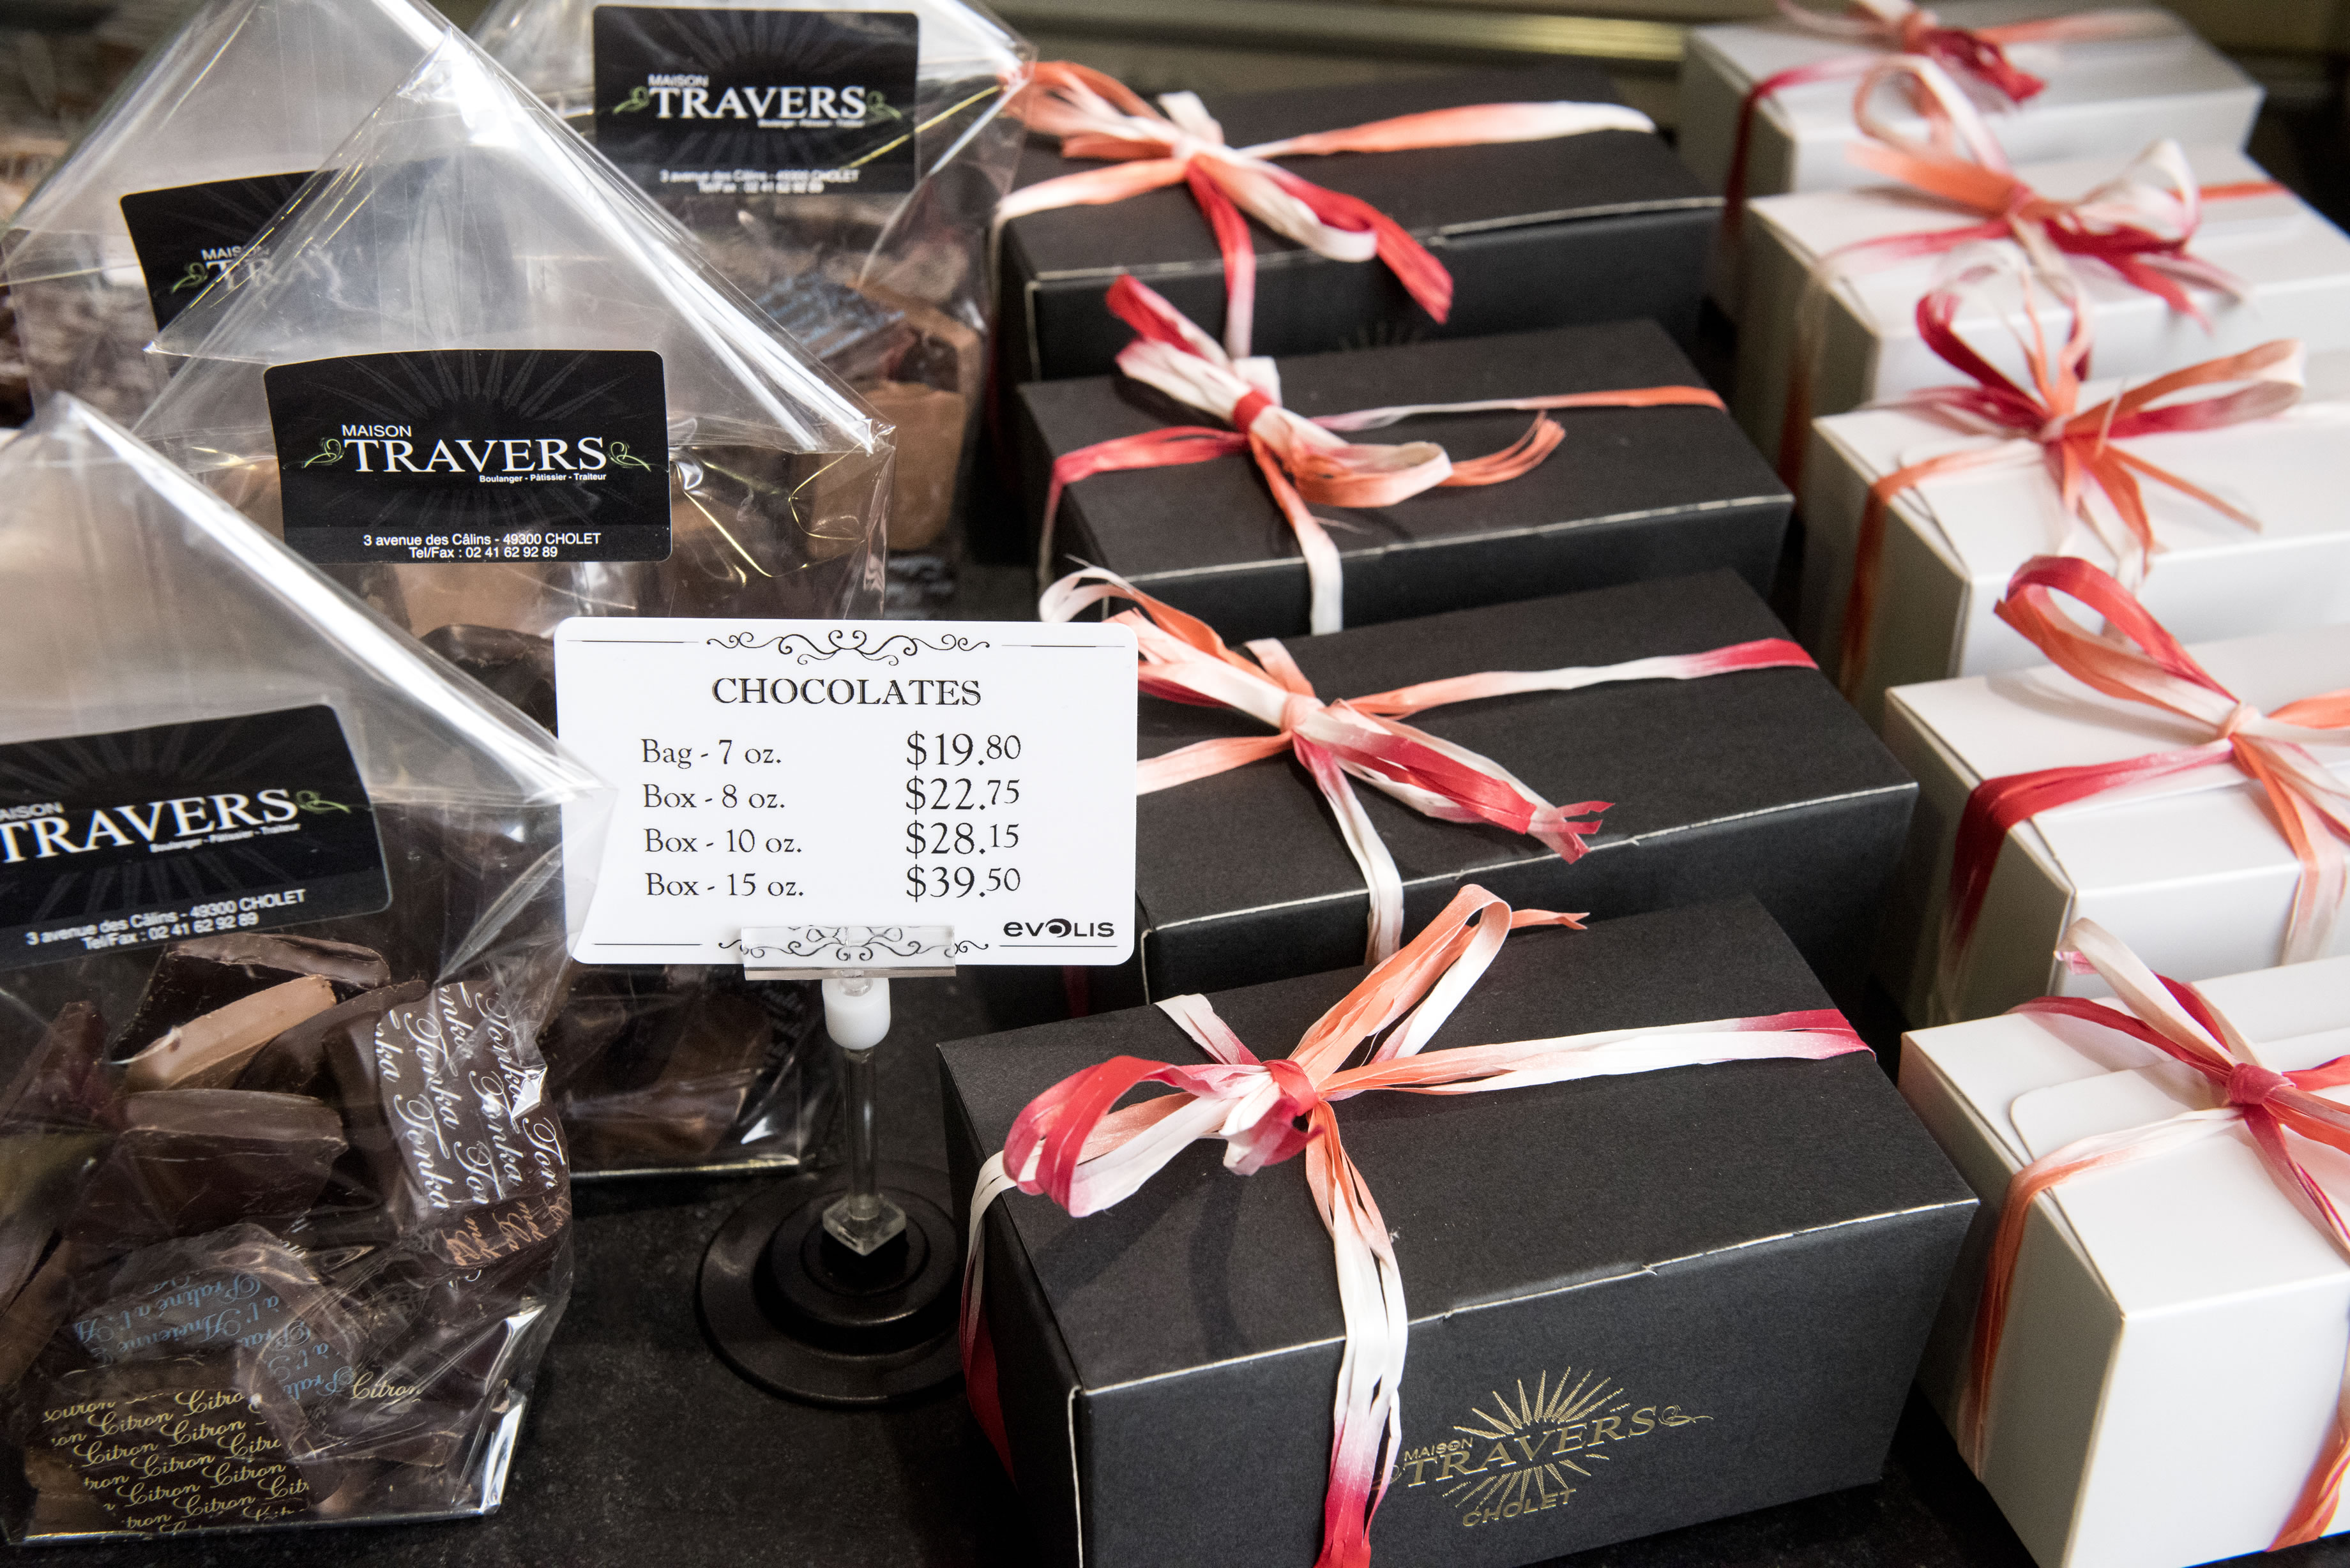 Chocolate display counter price tags created by Edikio printer solutions